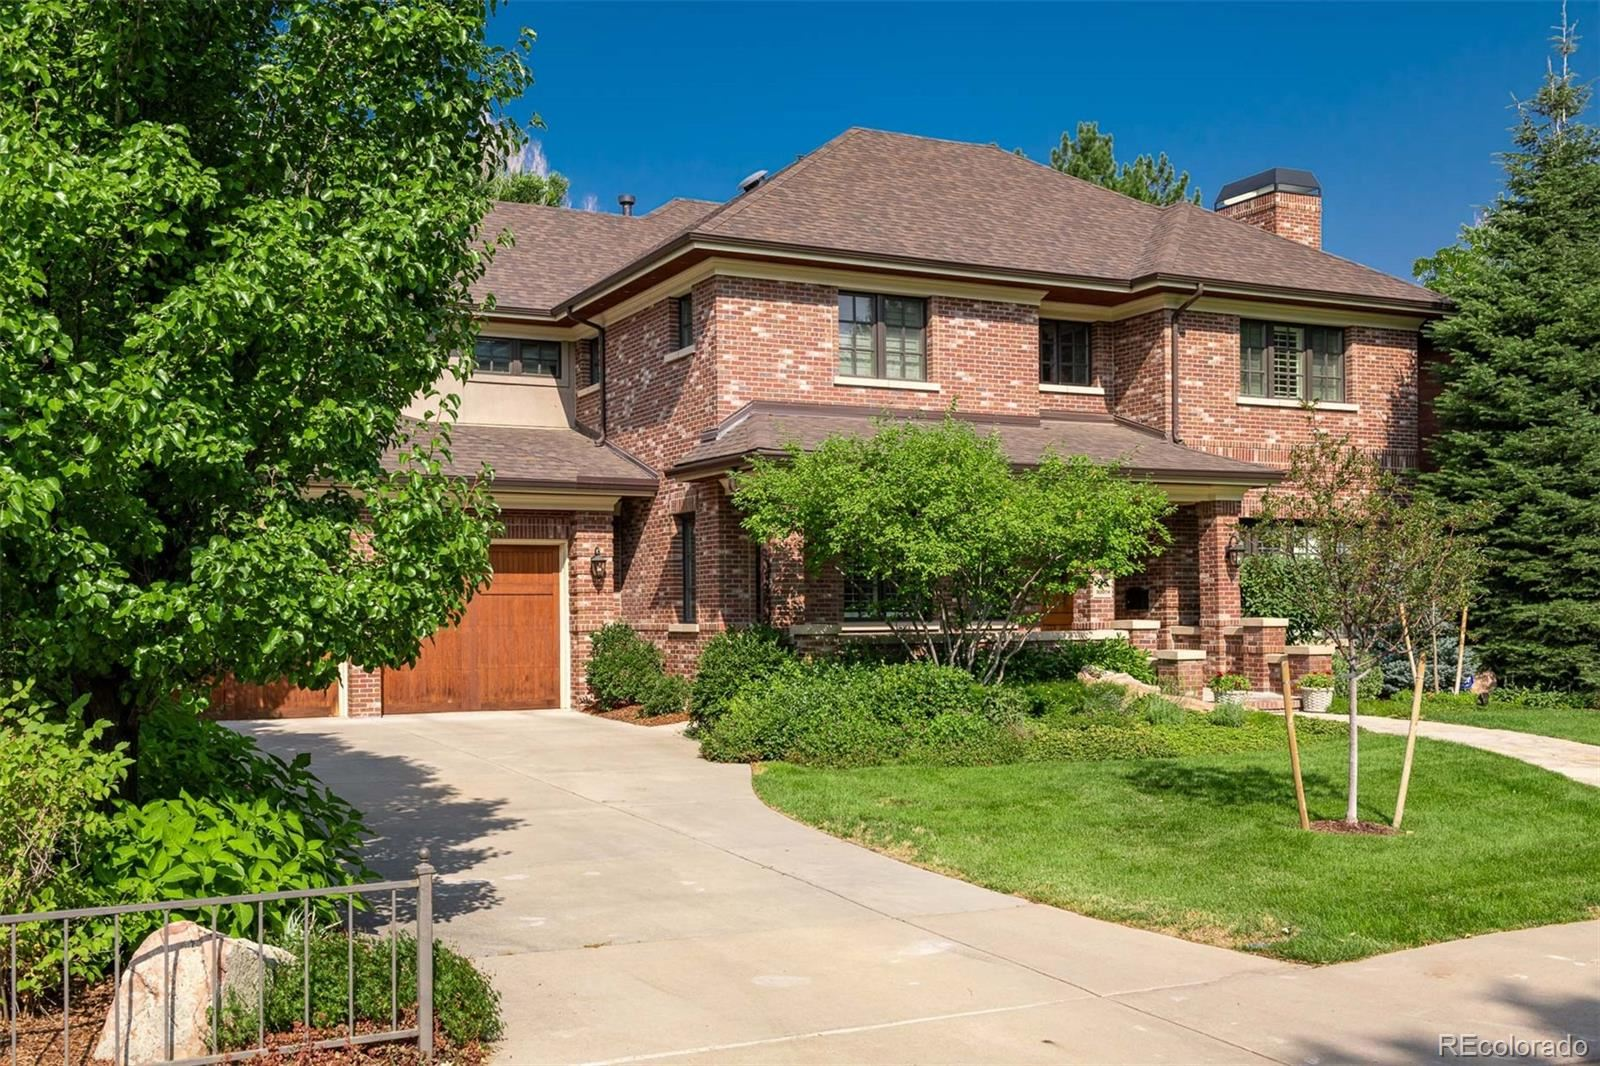 Photo of 35 S Clermont Street, Denver, CO 80246 (MLS # 7810505)